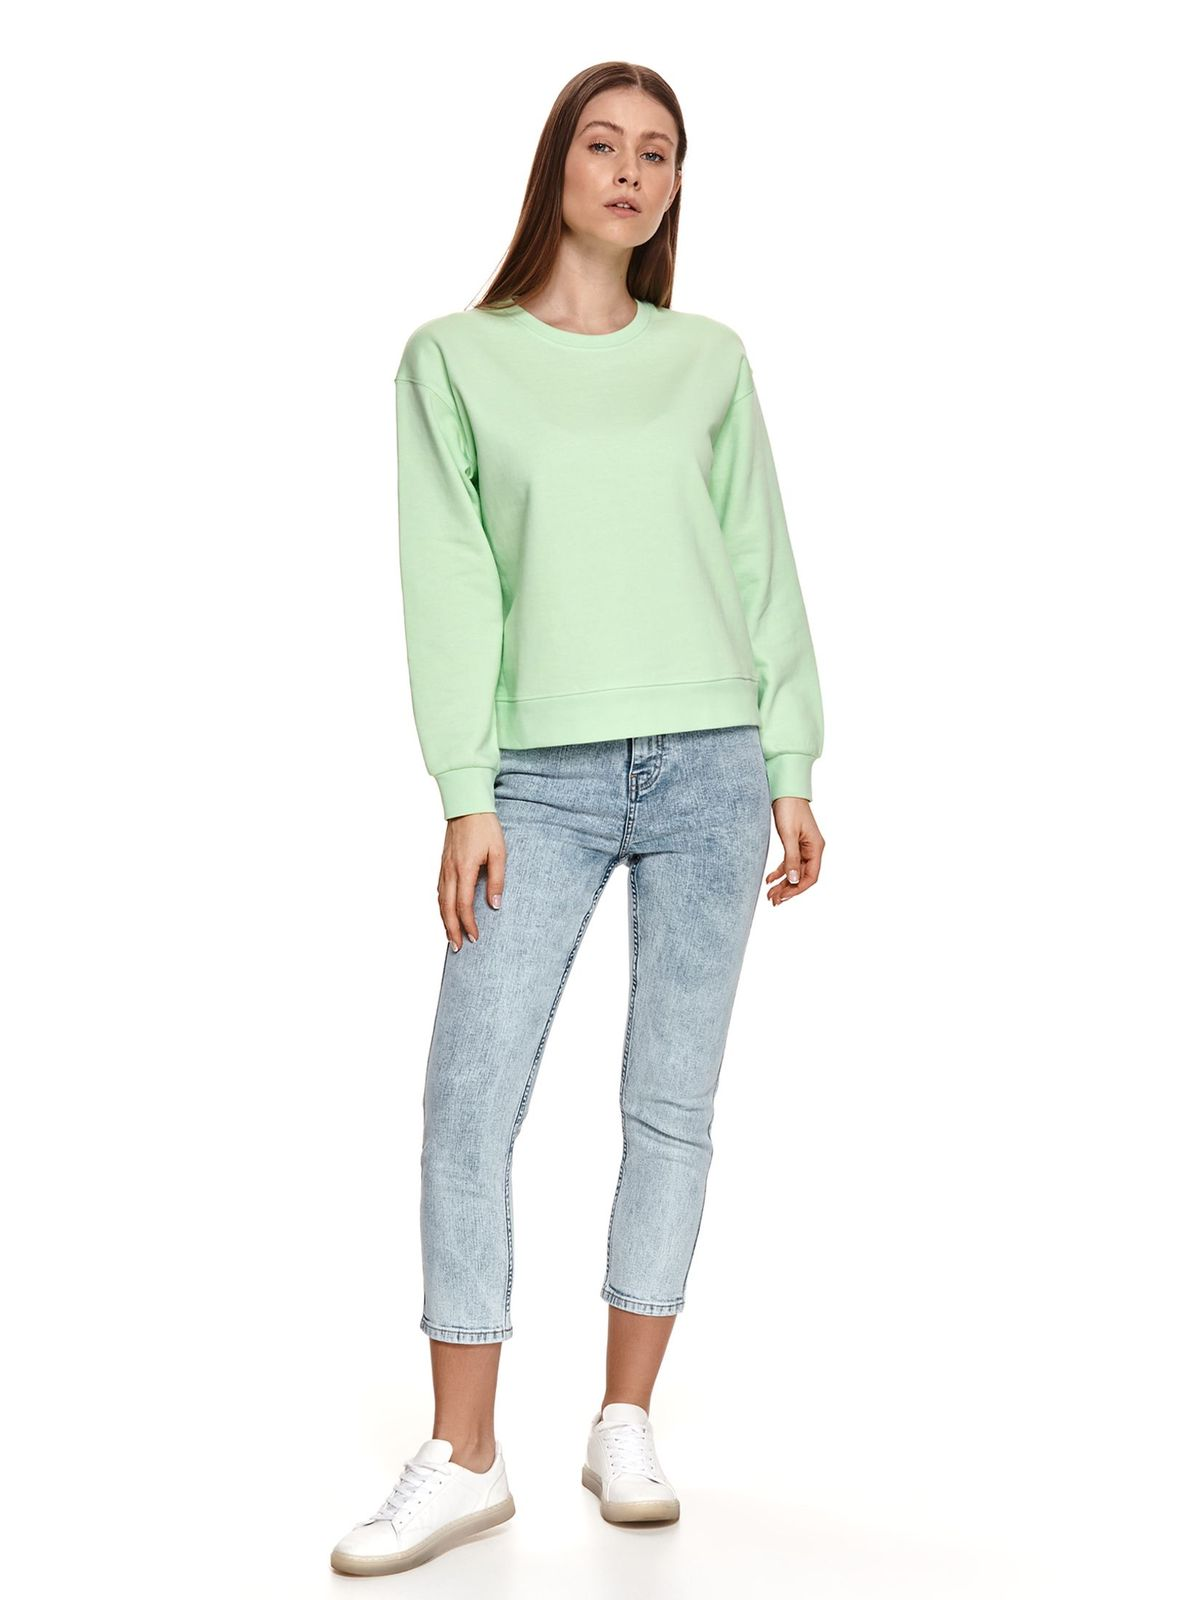 Green women`s blouse loose fit with rounded cleavage